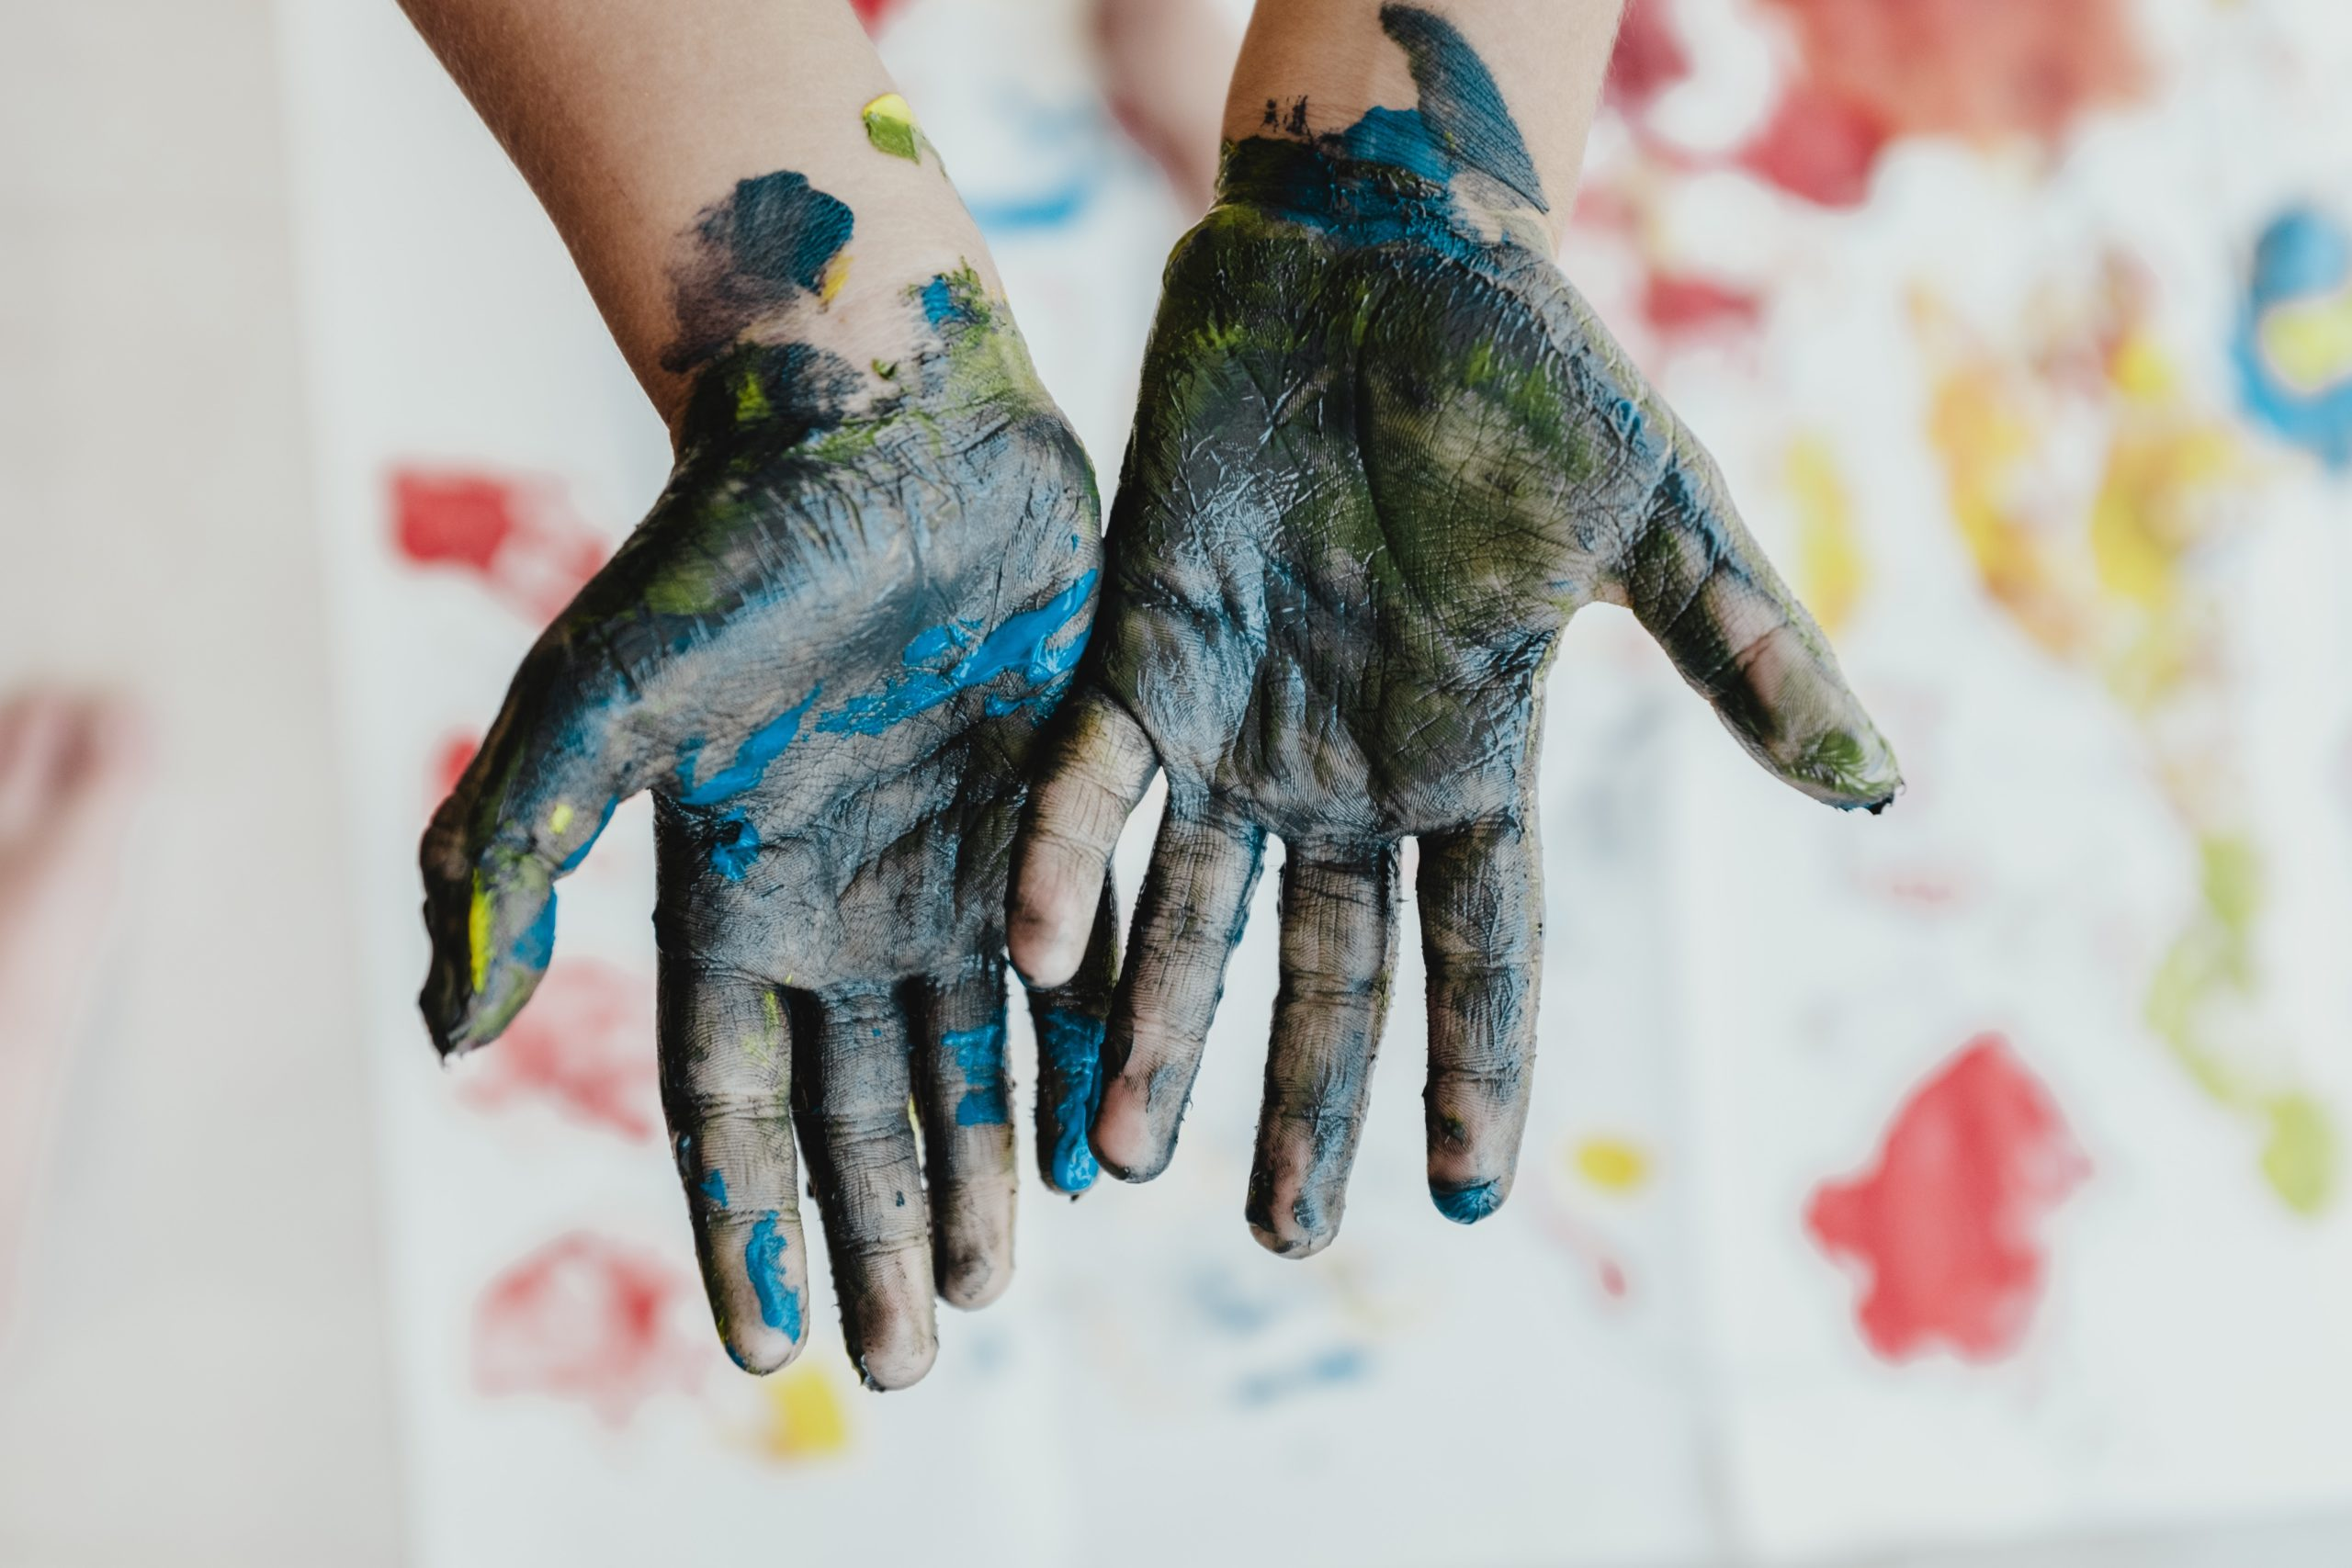 children's hands with paint